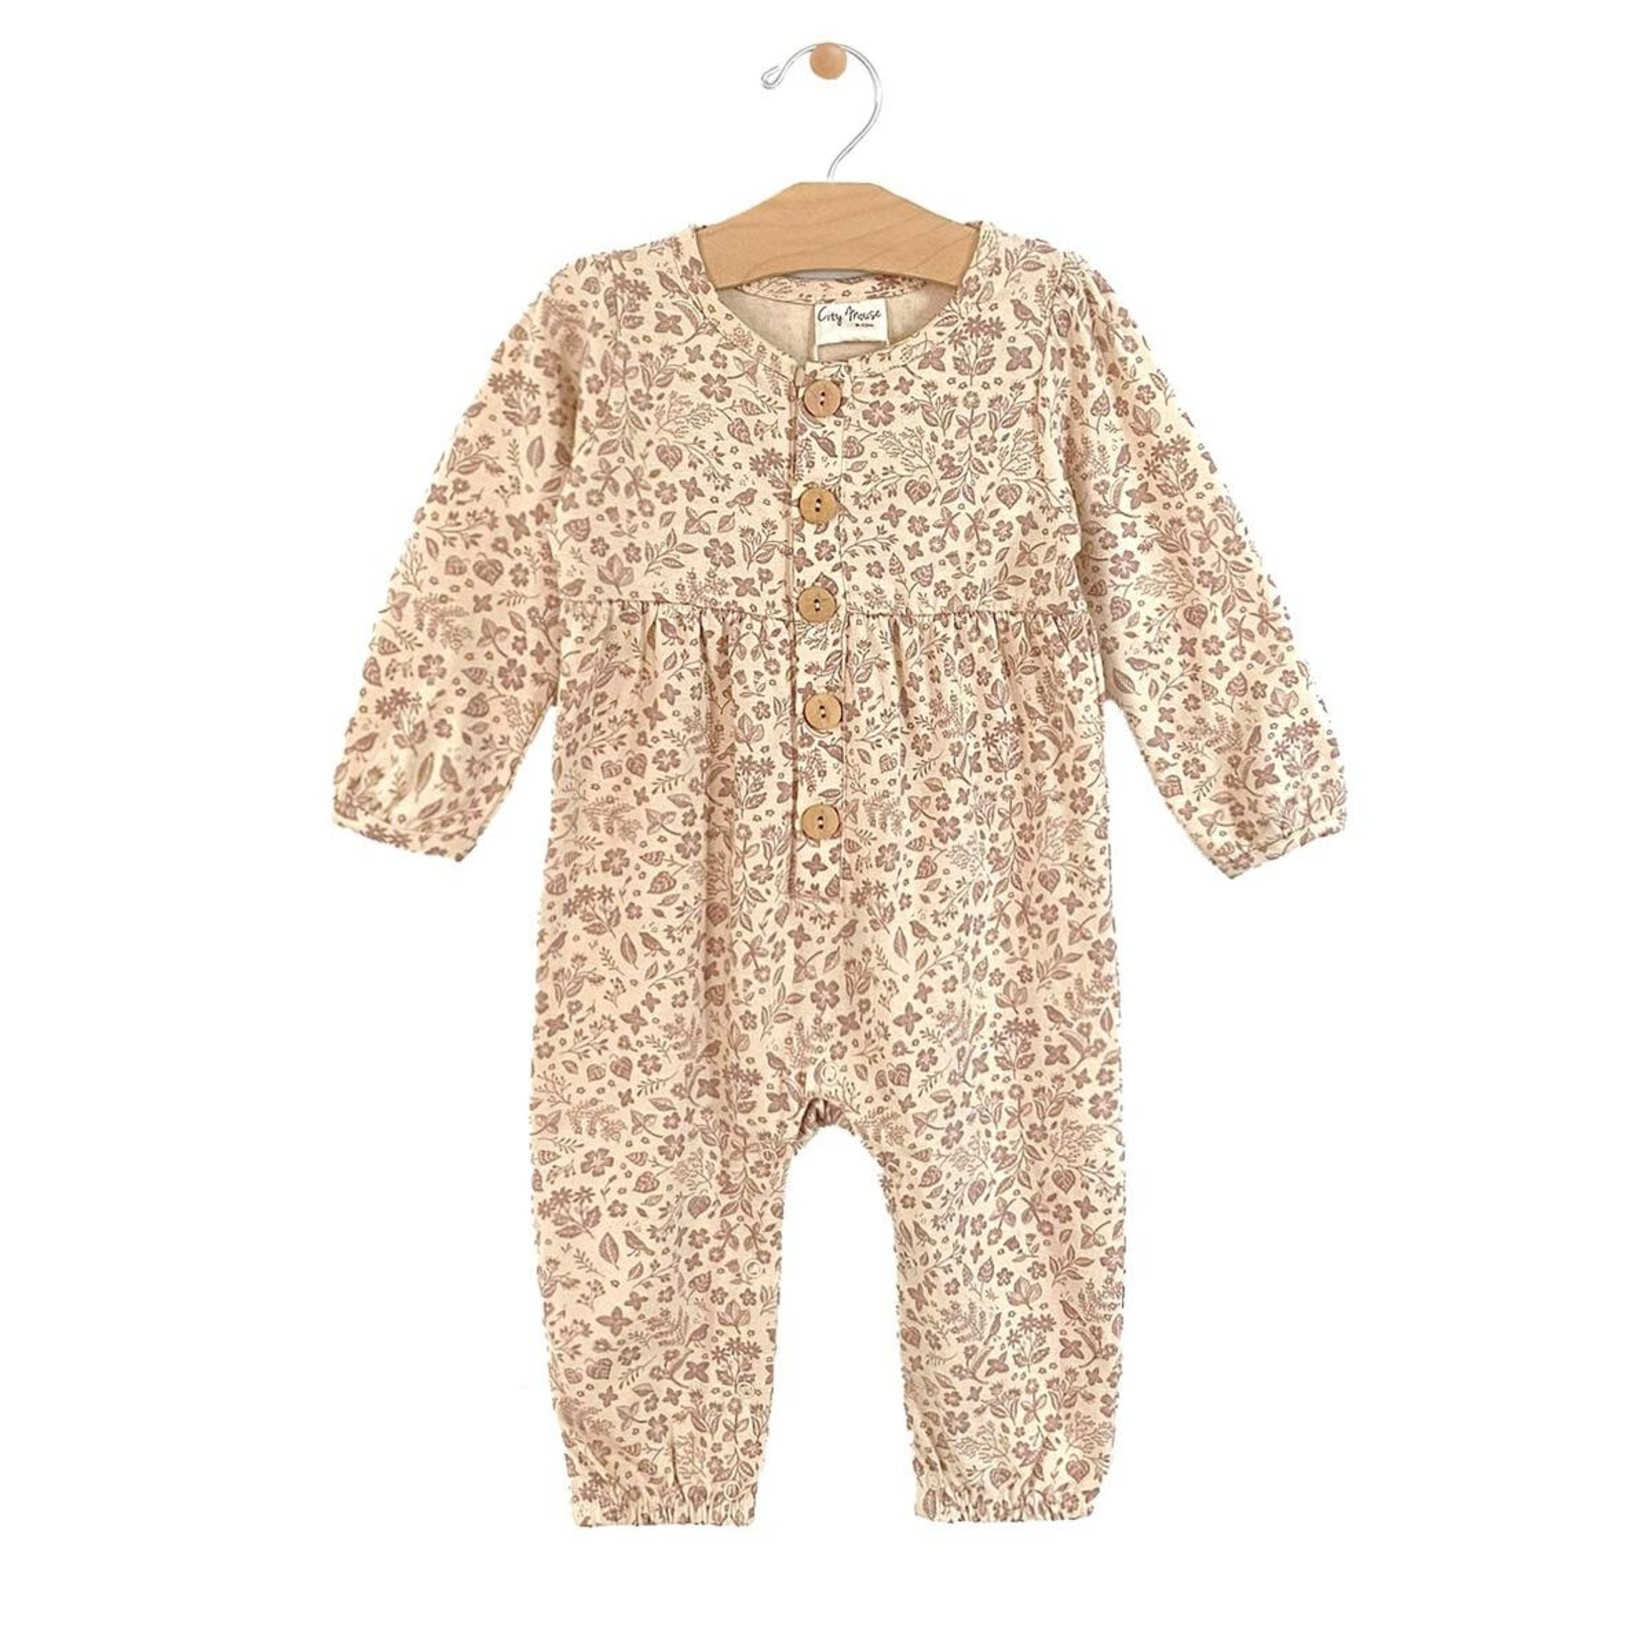 City Mouse Button Gathered Romper - Dusty Rose Garden